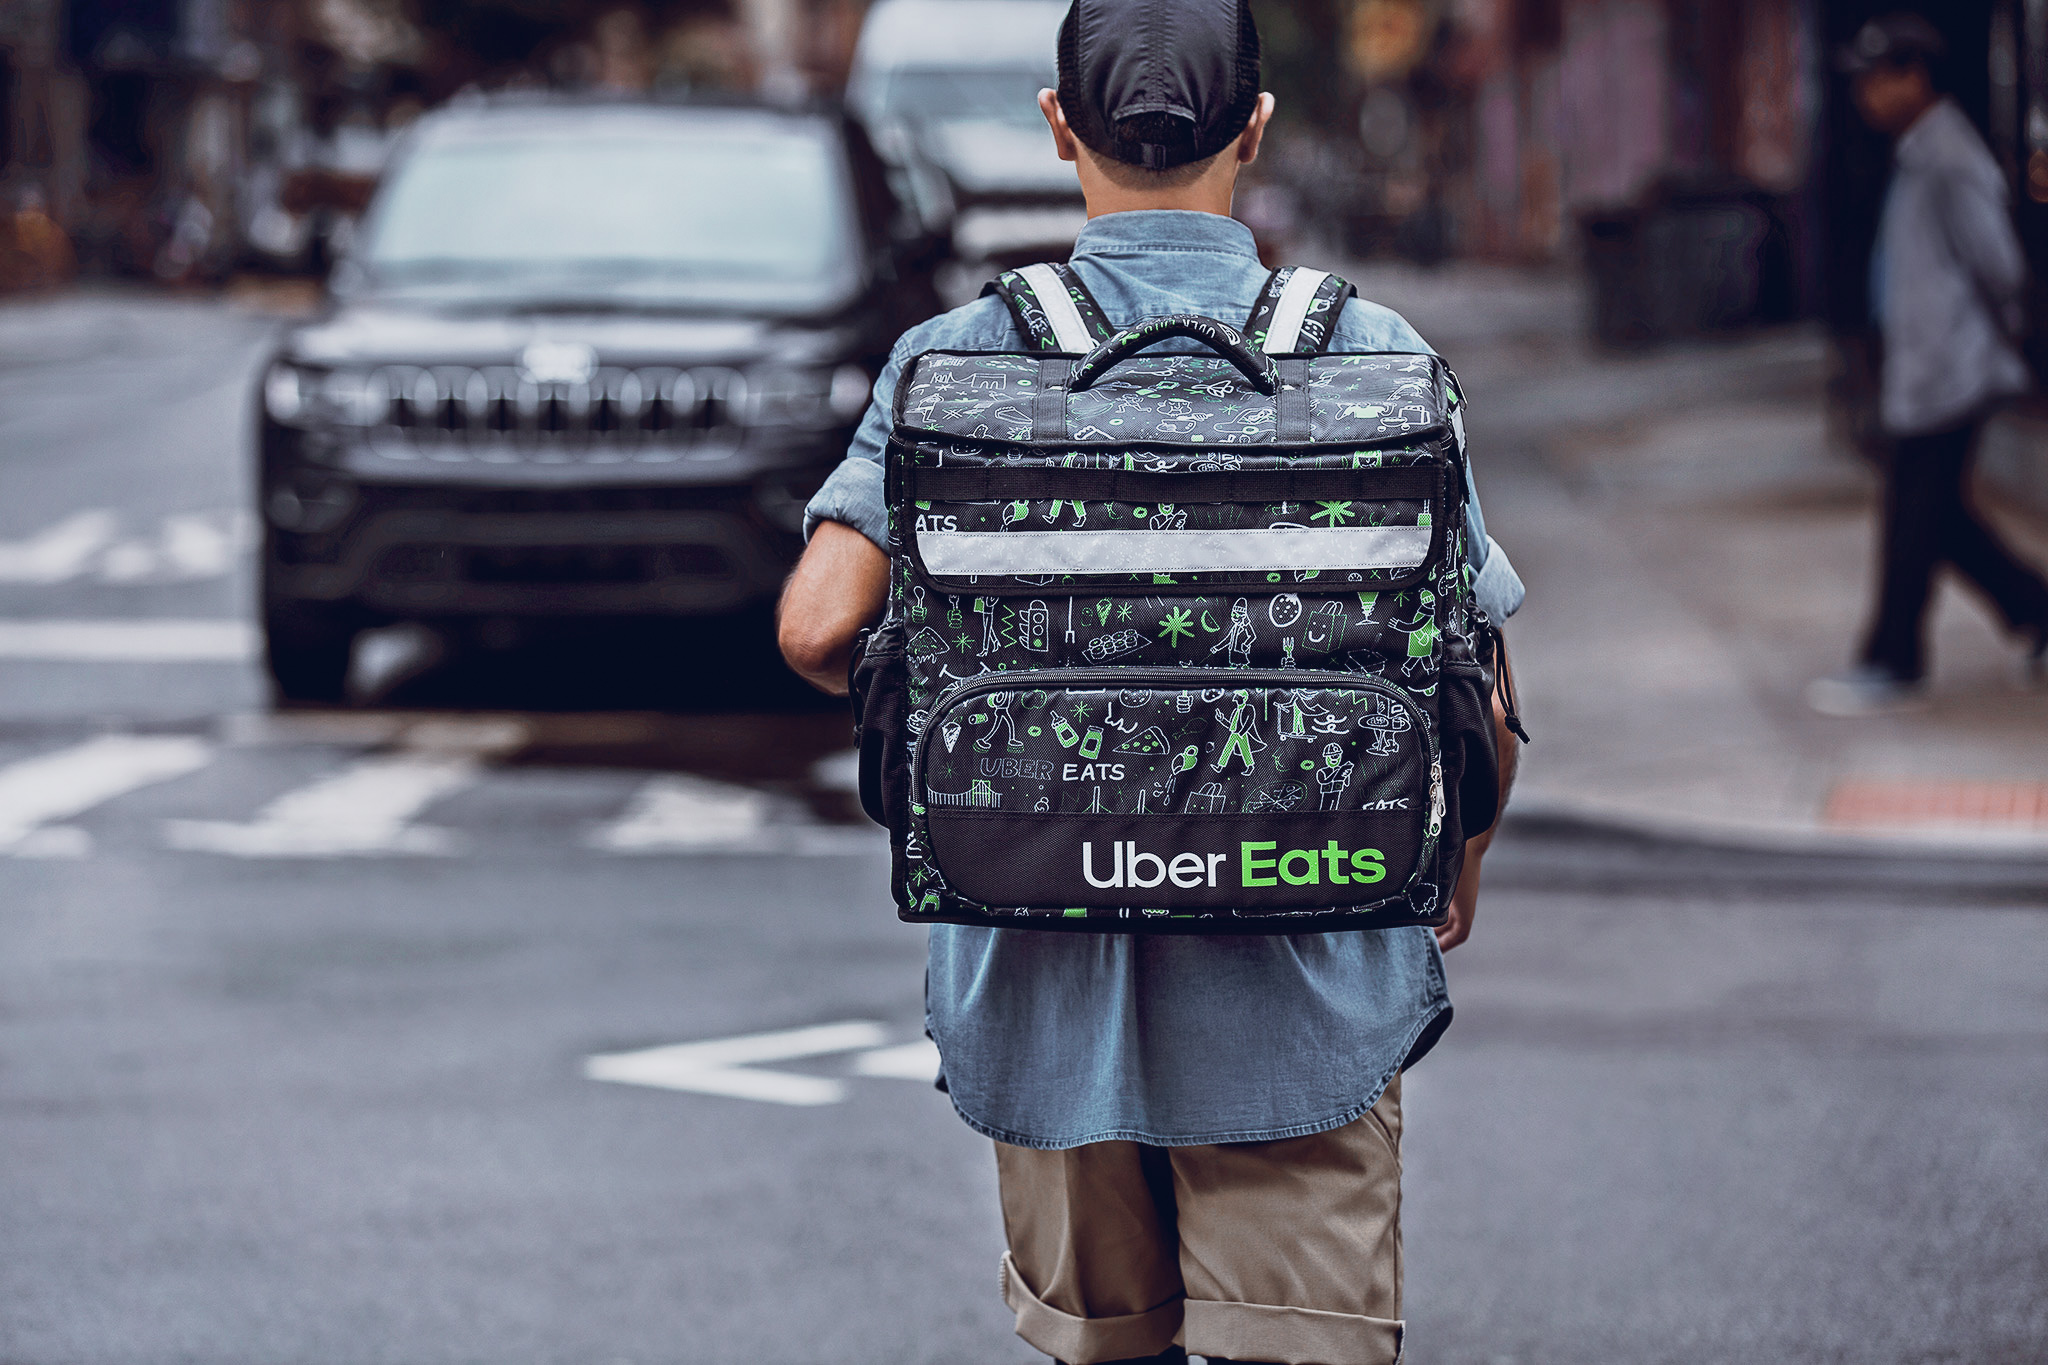 Uber Eats | Food Delivery and Takeout | Order Online from Restaurants Near You